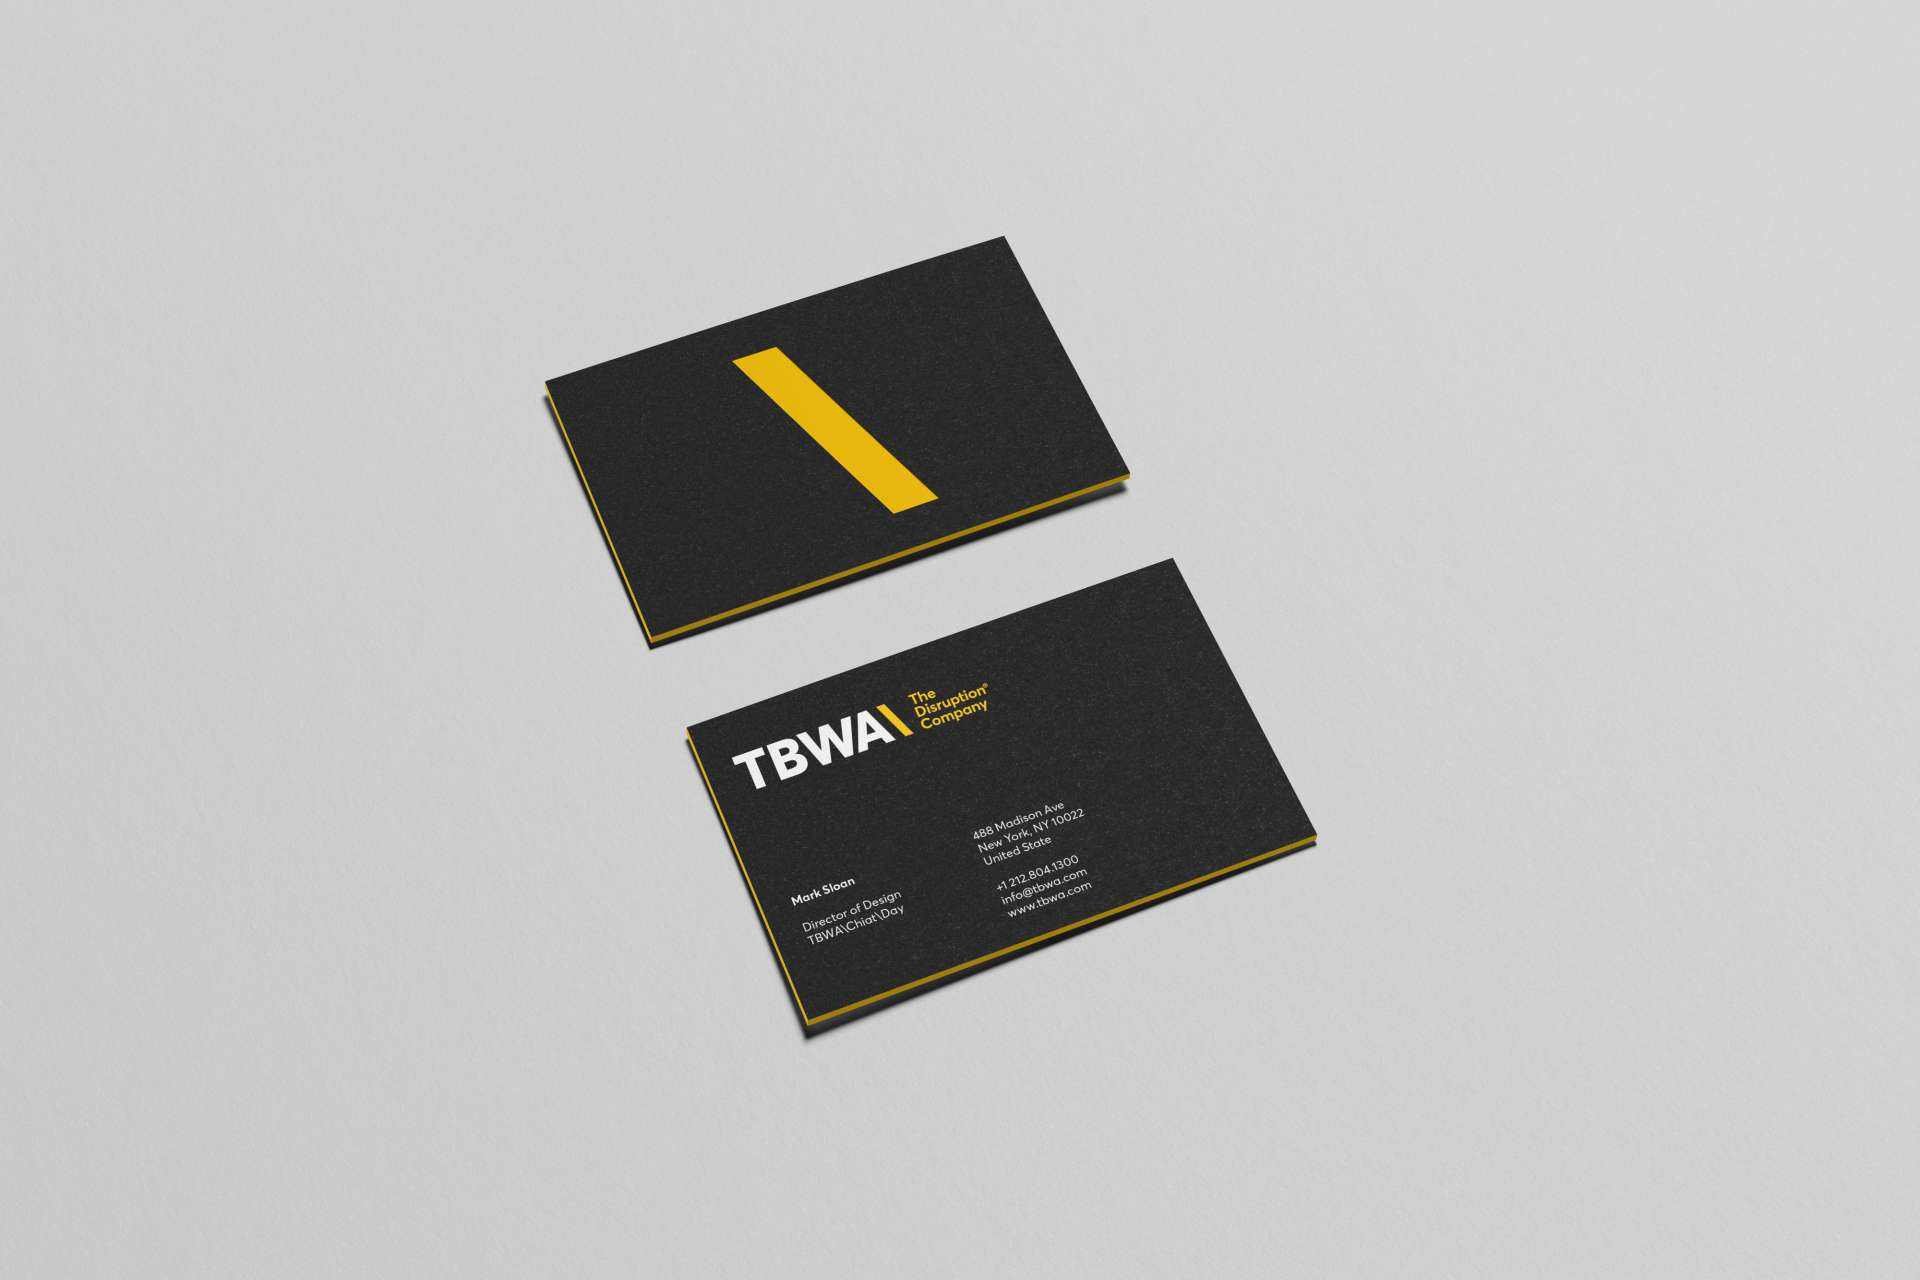 1 Day Business Cards Gallery - Business Card Template